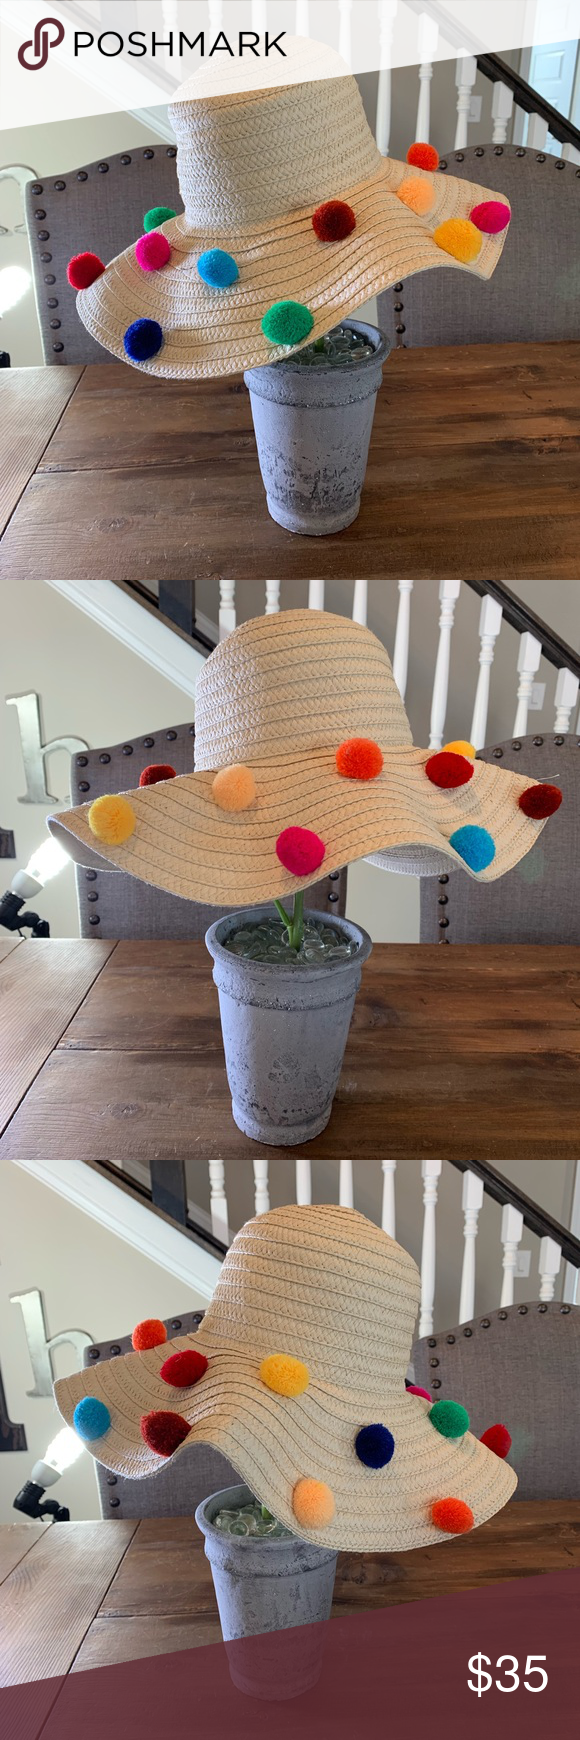 New Betsey Johnson Pom Pom Floppy Beach Sun Hat Betsey Johnson Brand New  with tags attached Floppy Style Beach Hat Adorned with multi colored  Pompoms for a ... 065061fa22c0